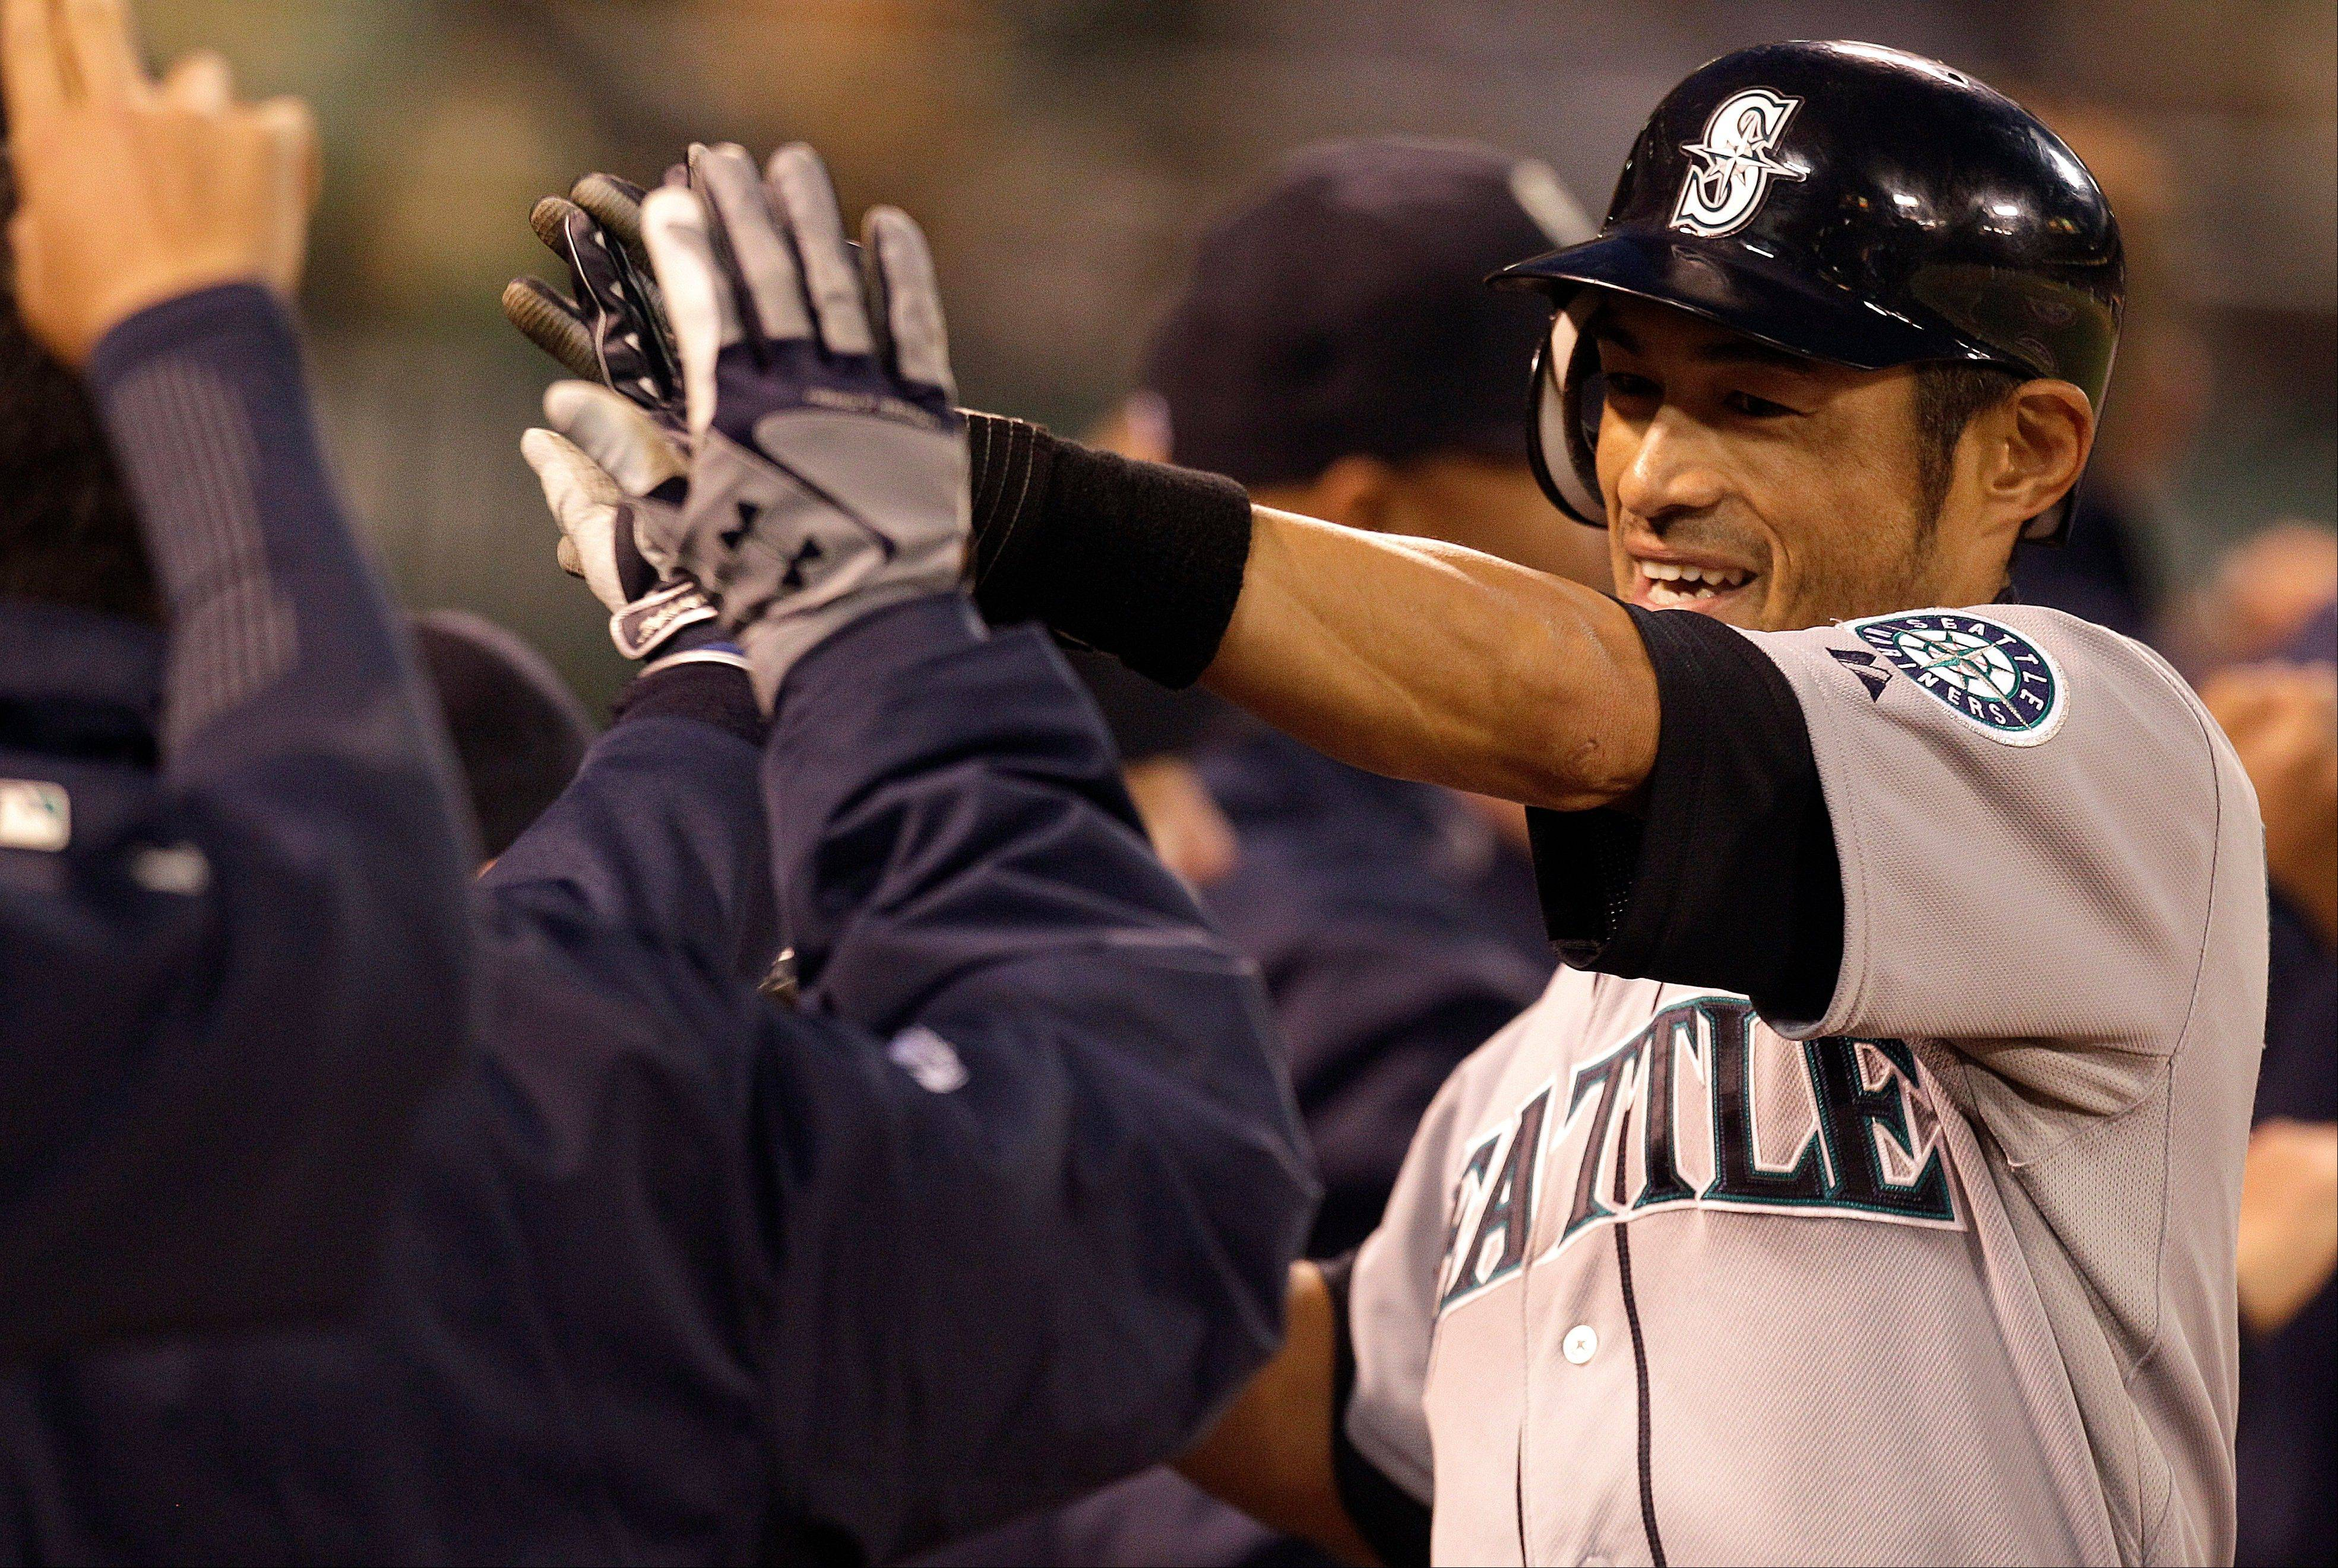 Mariners outfielder Ichiro Suzuki has spent his entire major-league career in Seattle � until now.